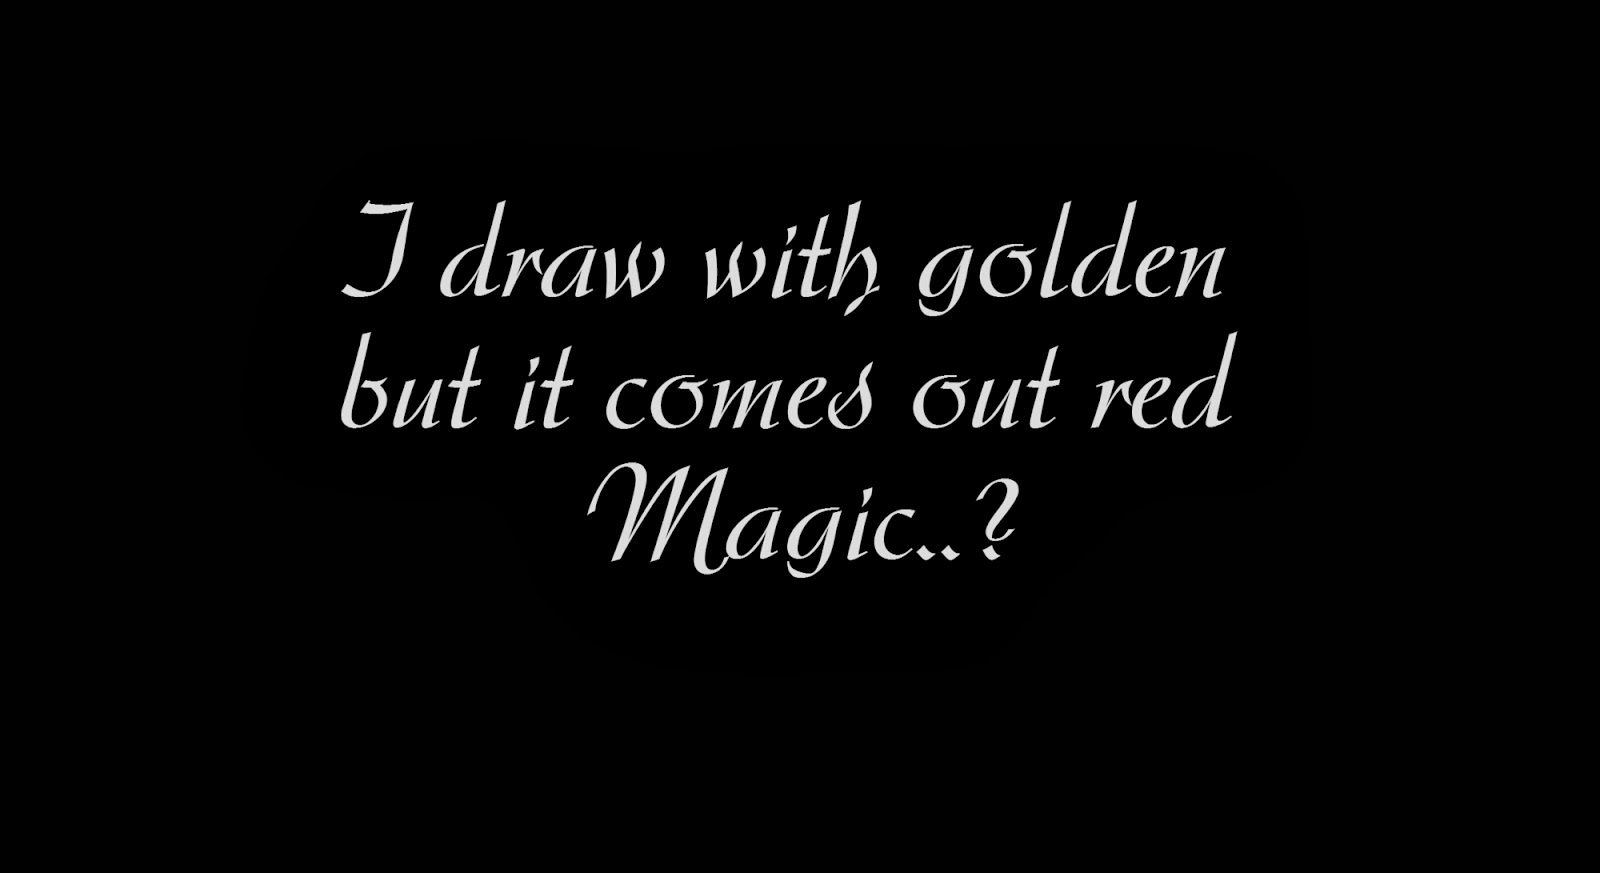 I draw with golden but it comes out red magic.